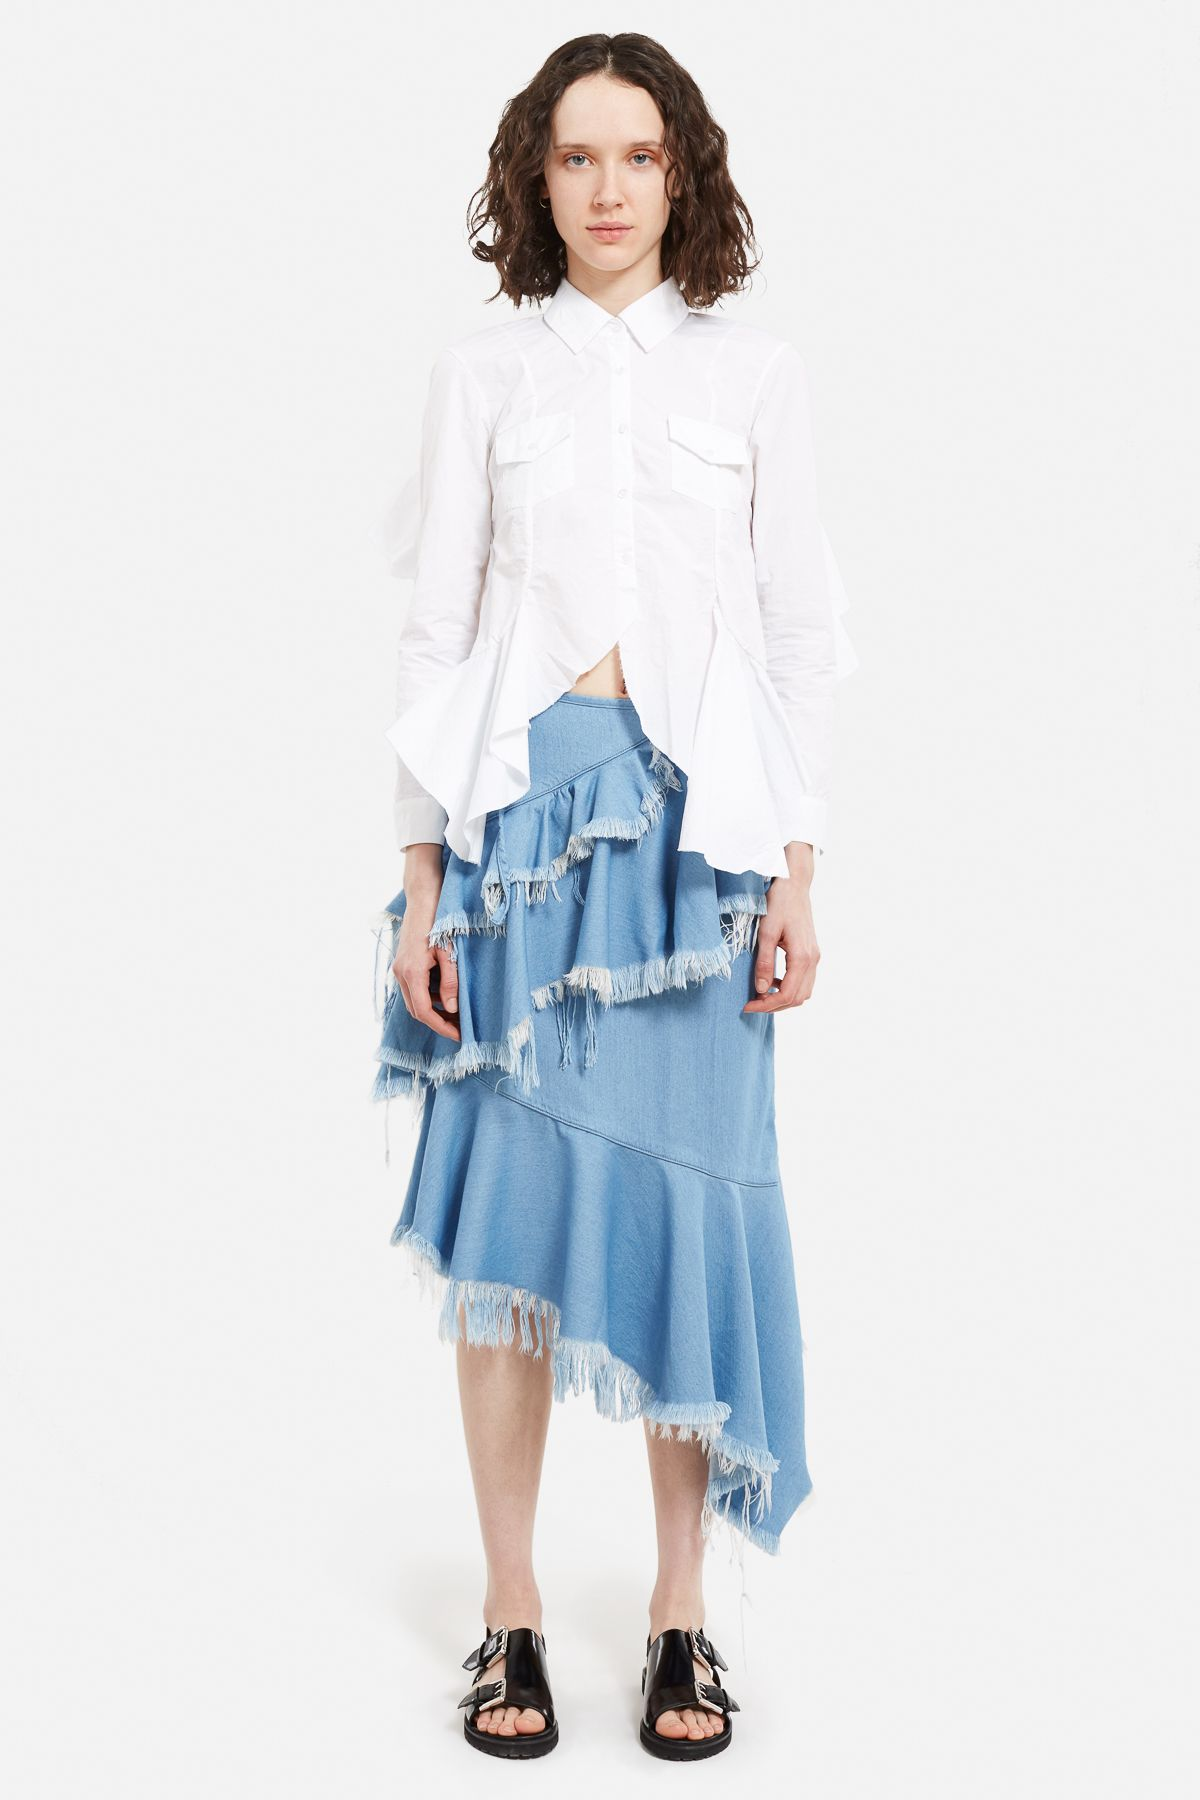 Marques Almeida Open Back Frill Shirt - WOMEN - JUST IN - Marques Almeida - OPENING CEREMONY